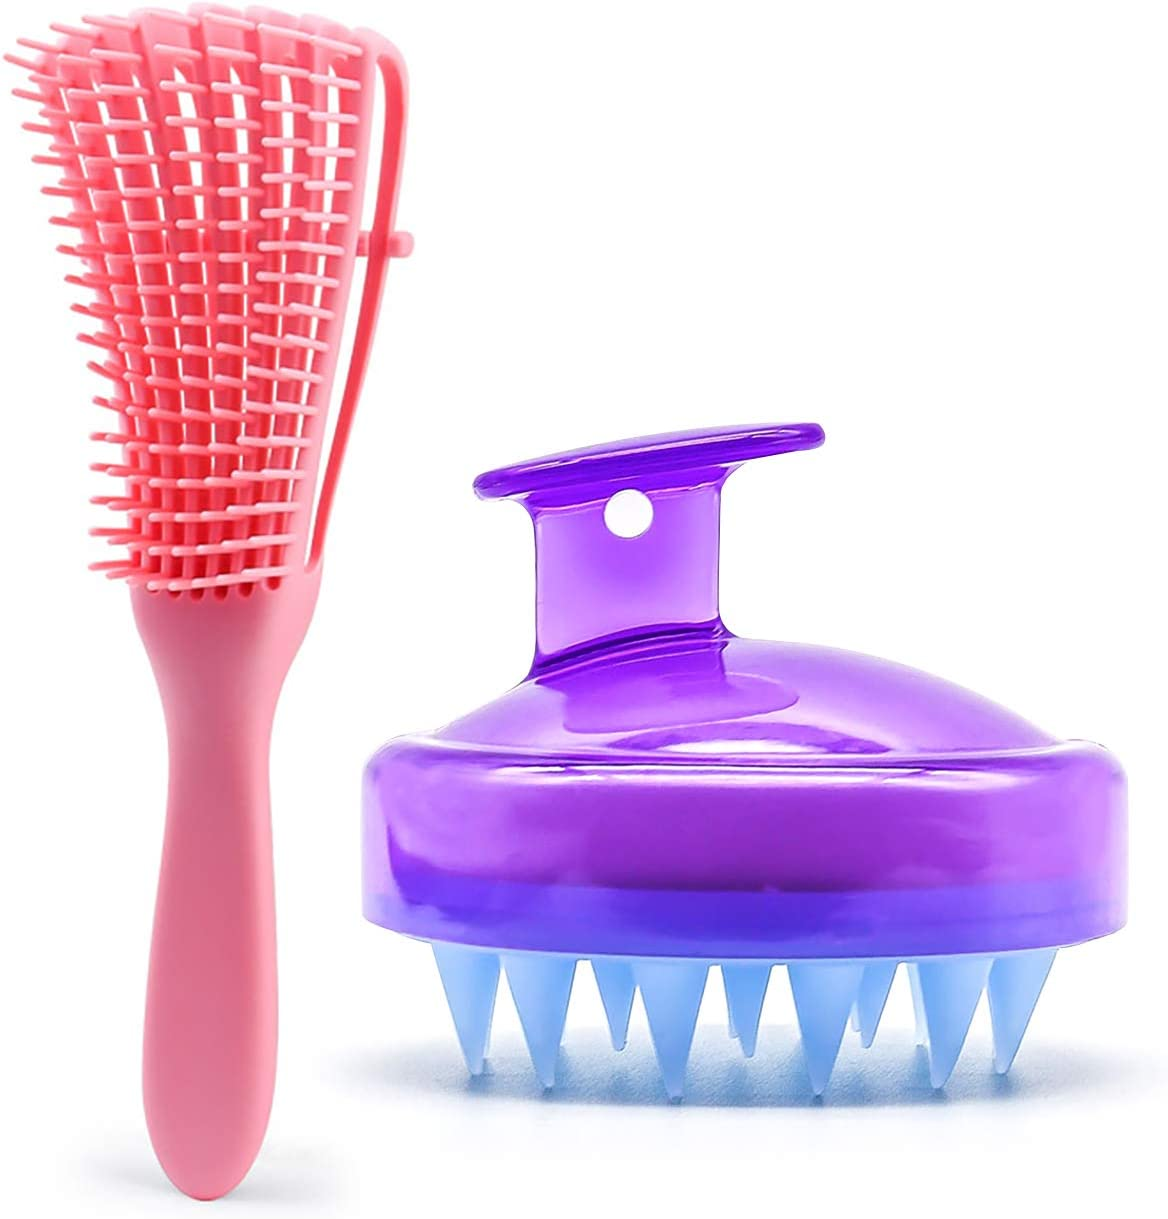 reakoo Soft Pet Cat Brush With Ultra Soft Silicone Pins Comfortable for Pets Washable NO Scratching Grooming /& Shedding Massage Brush for Cats Pink Comb + Purple Shampoo Brush